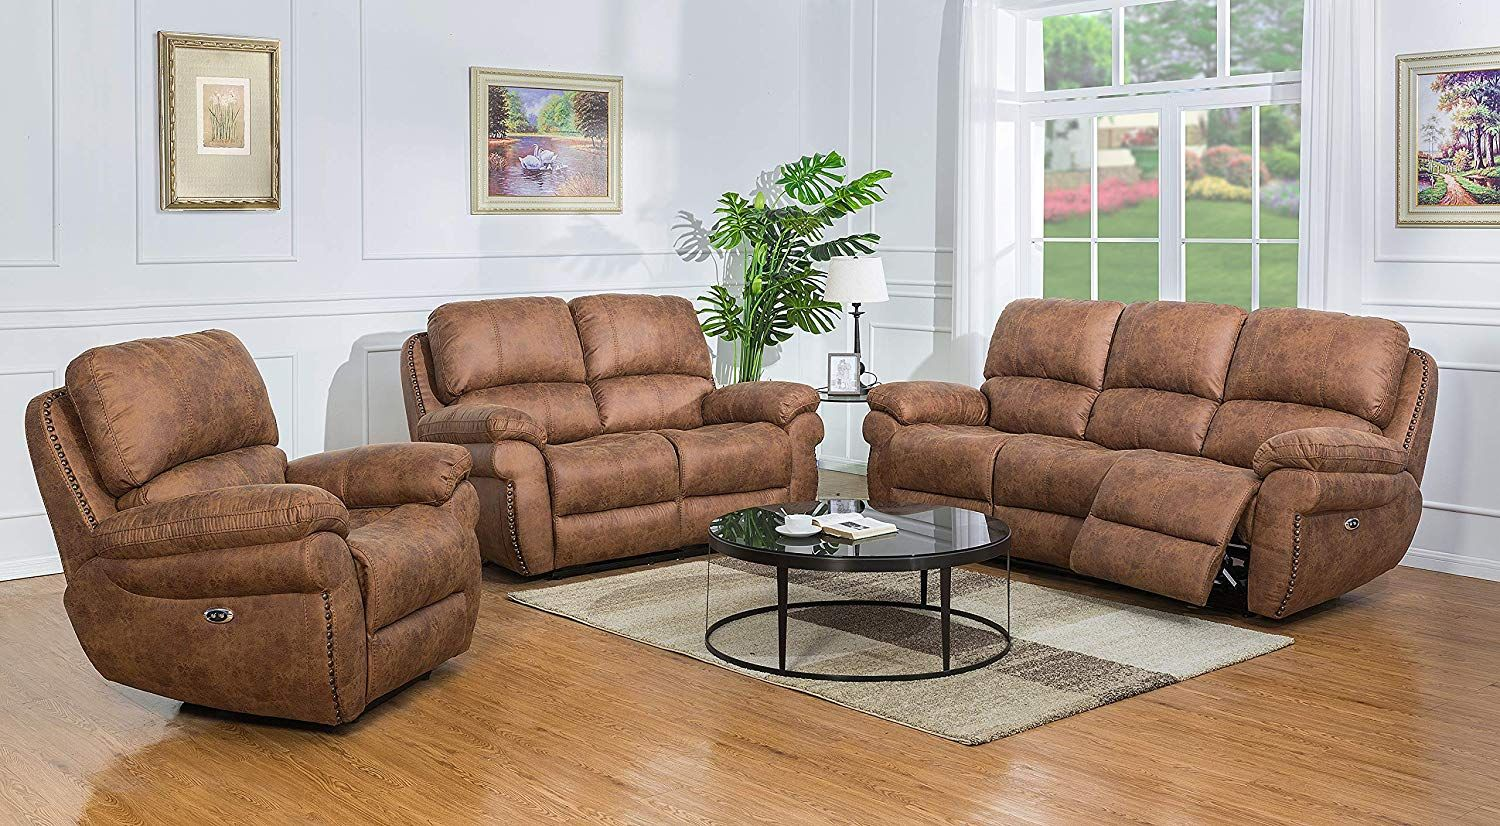 Mollai Collection 3 Pc Power Reclining Sofa Loveseat Chair Brown Fabric Luxury Home Furniture Living Room Sets Home Furniture